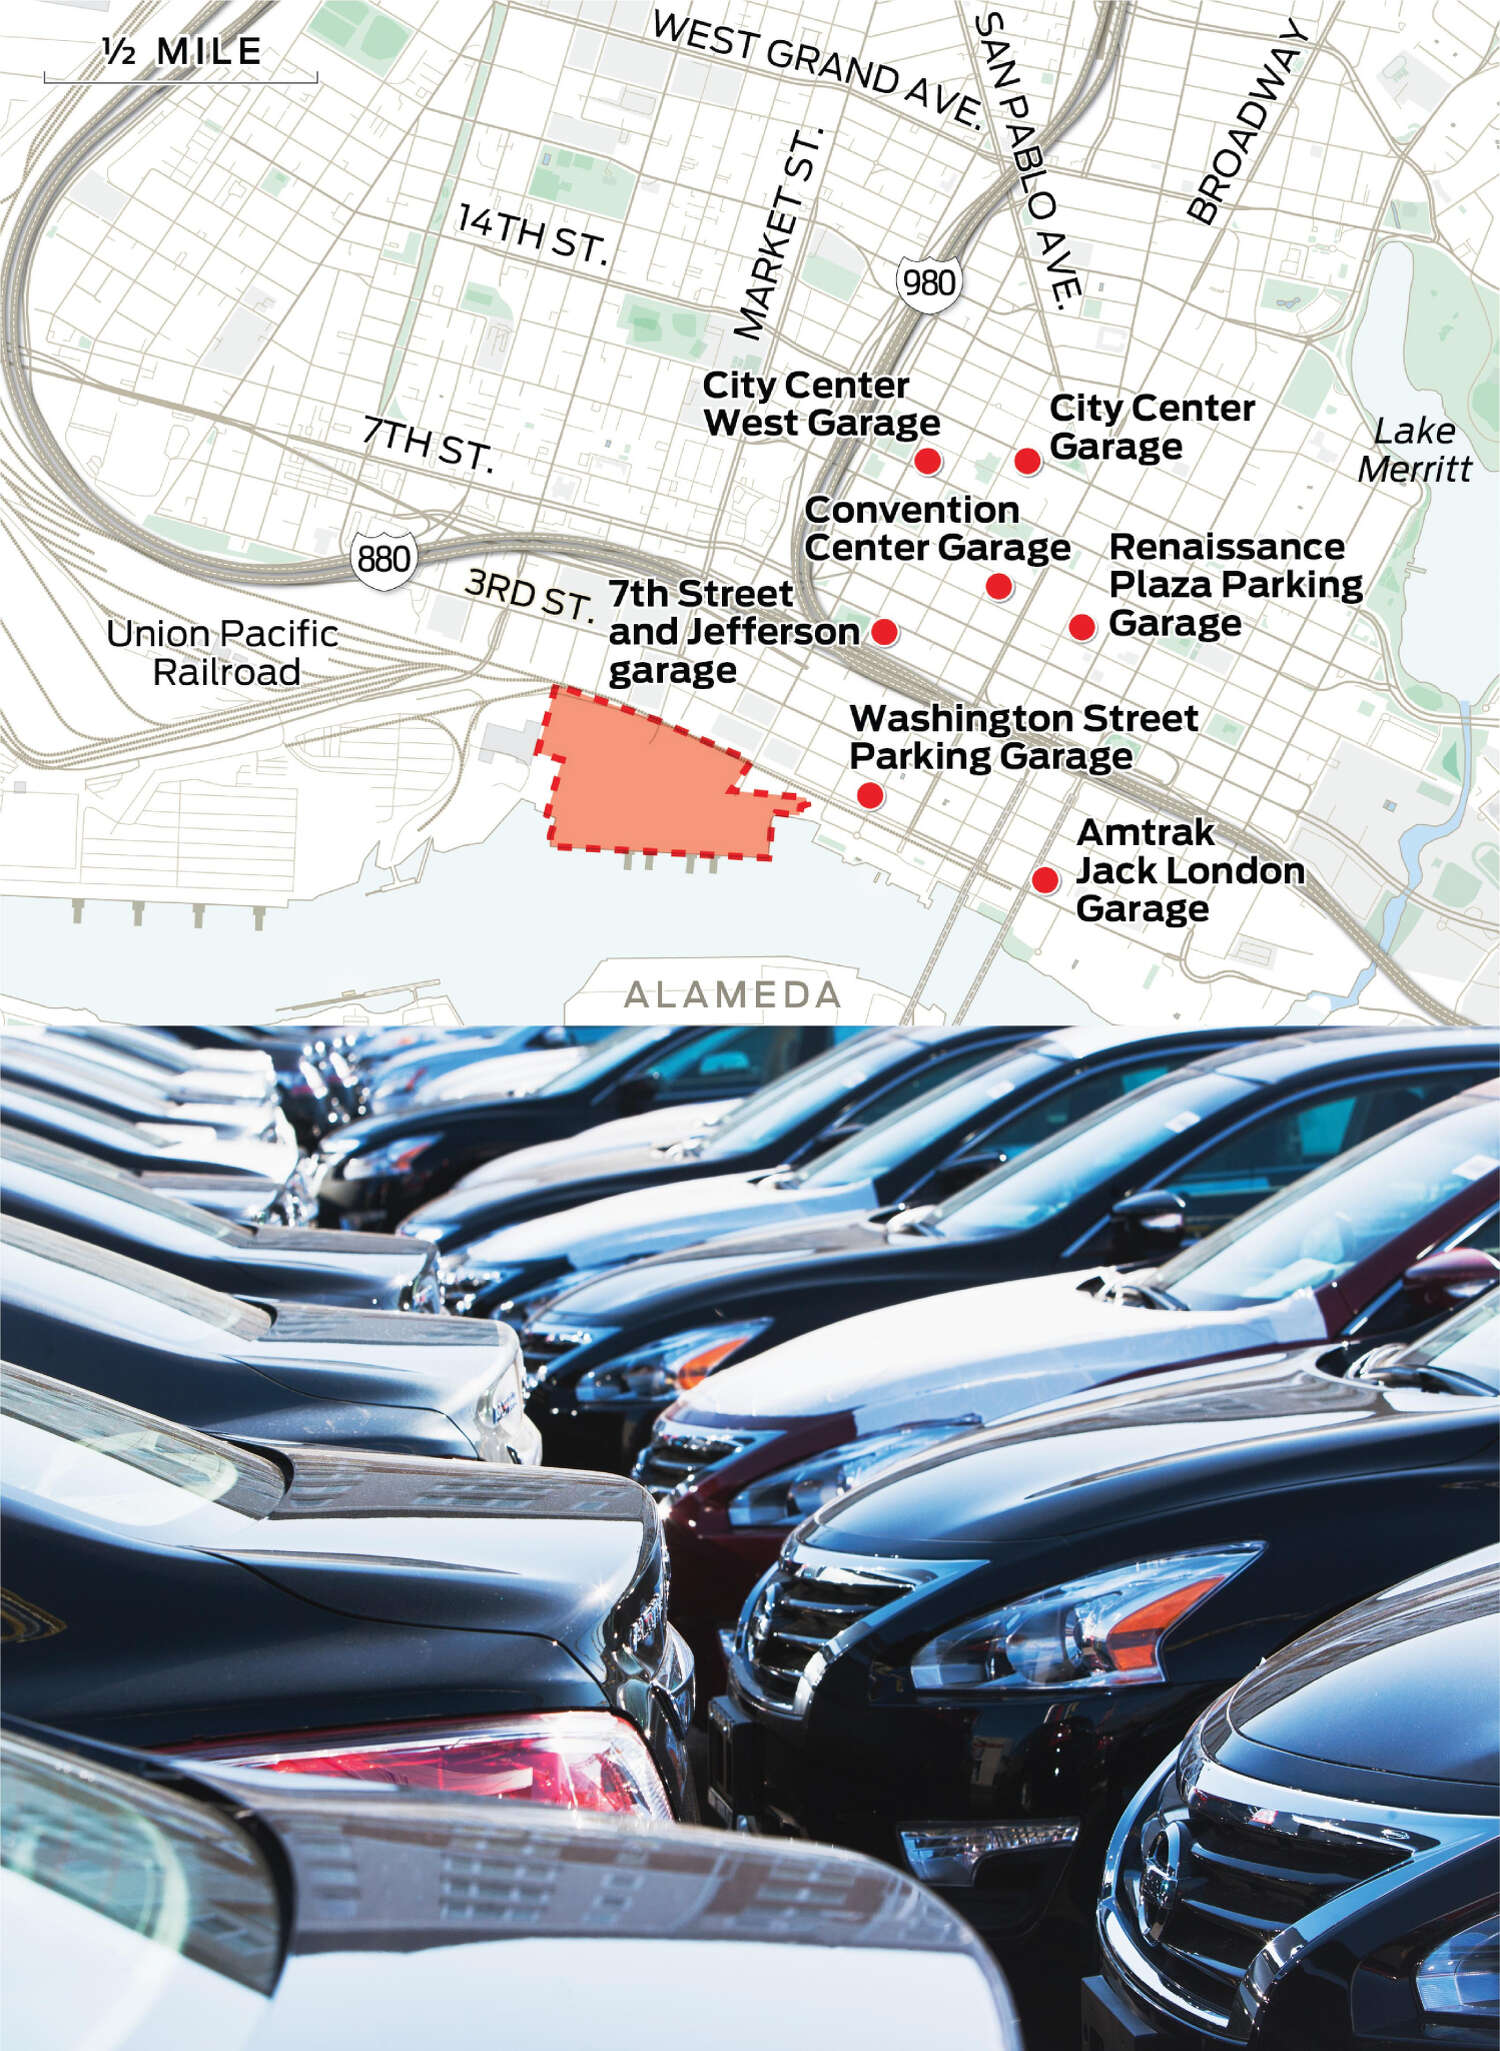 A selection of off-site parking garages near Howard Terminal is plotted on the map. A close-up of cars is shown.